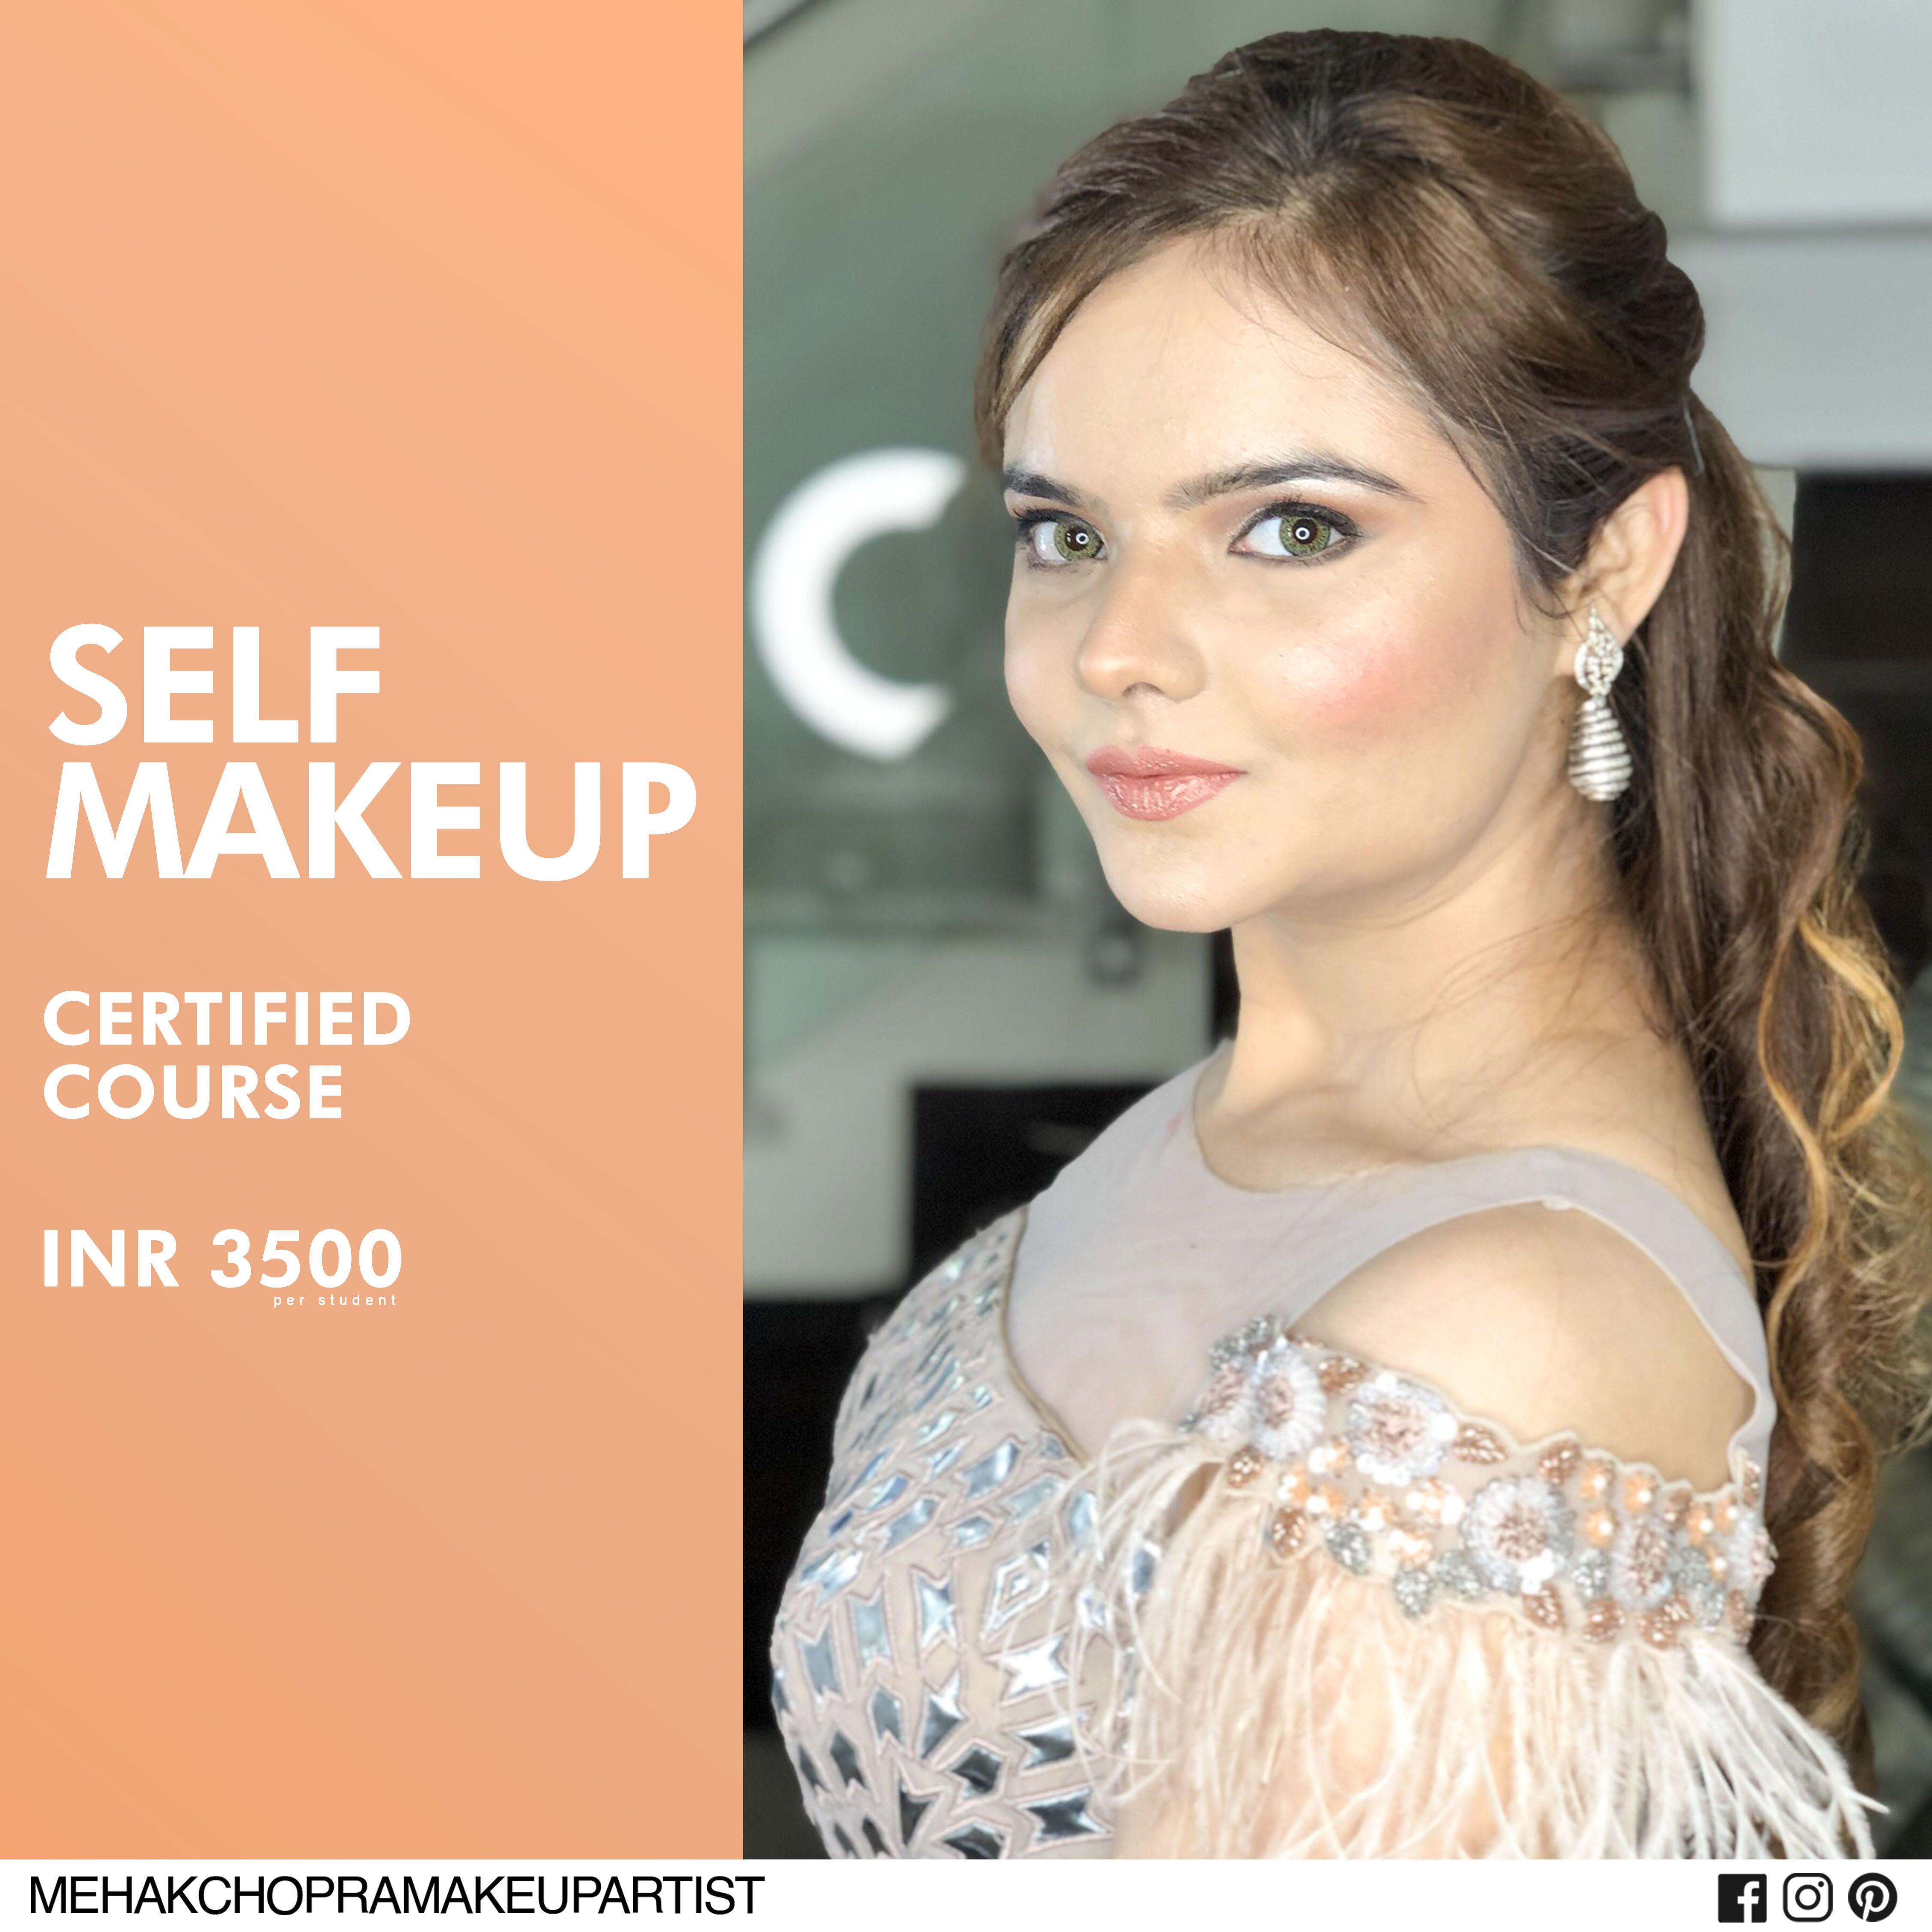 Looking for best Self Makeup classes with intense practice